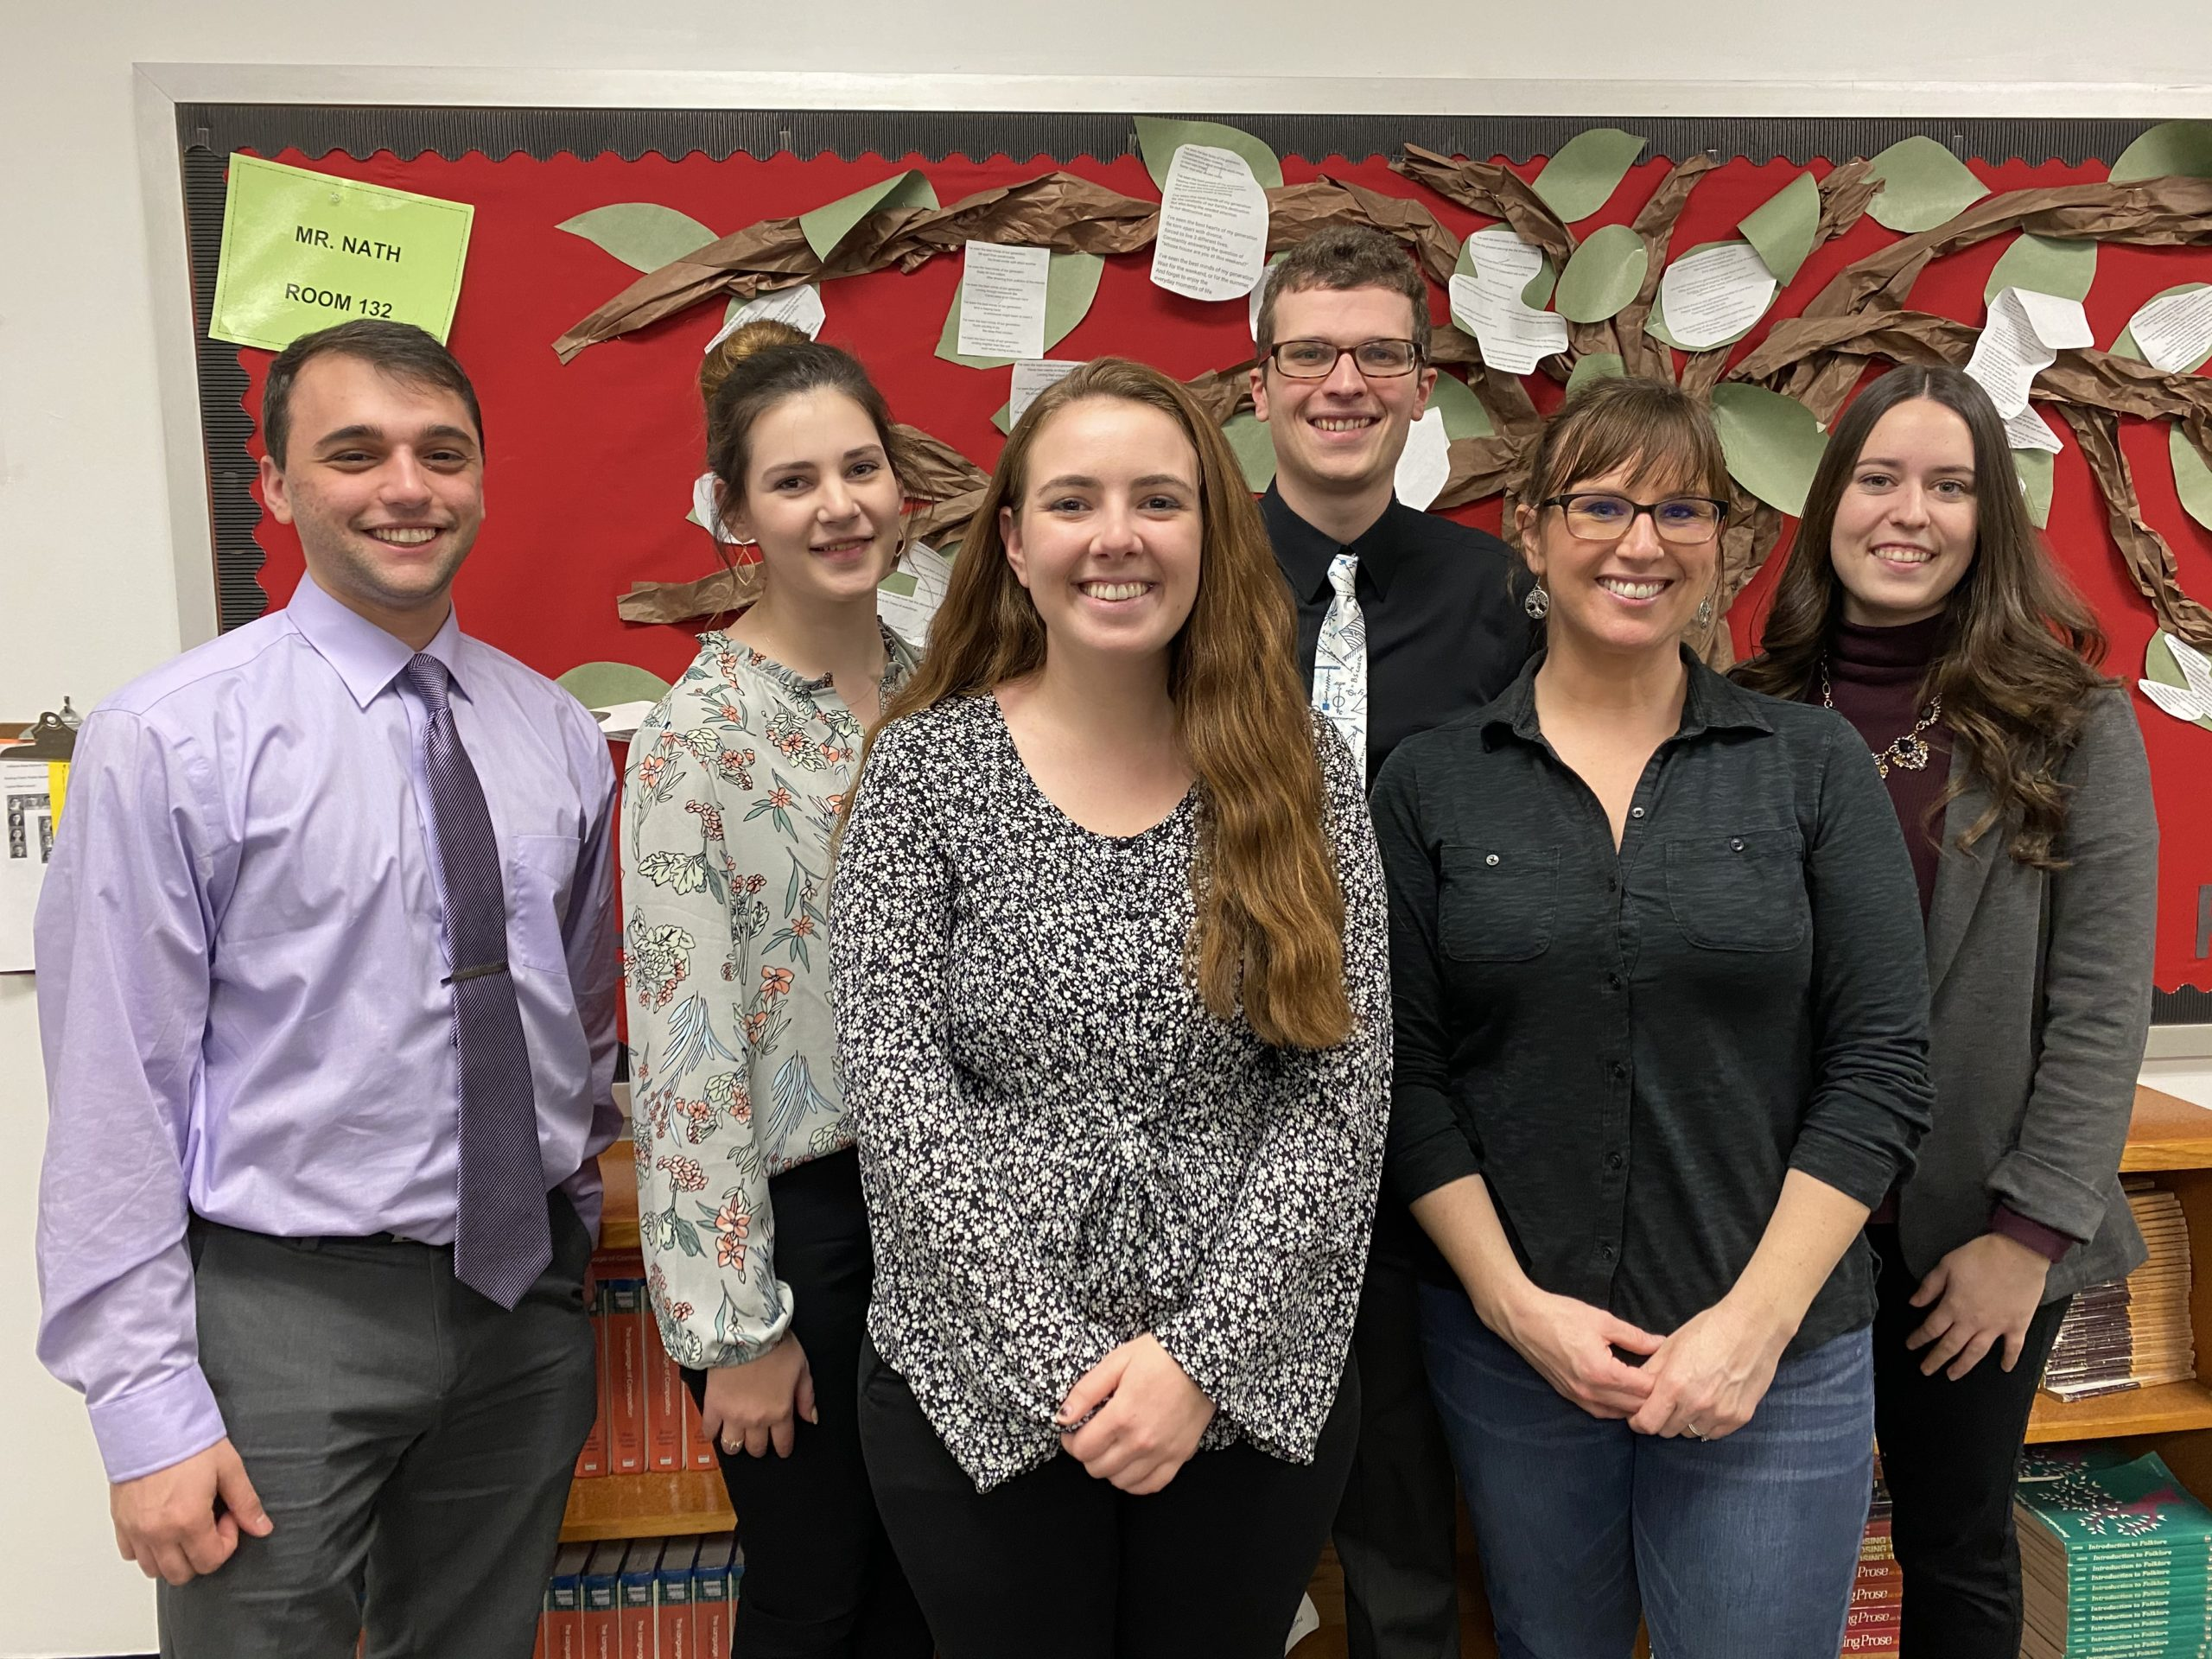 Student teachers bring insight and enthusiasm to the halls of IHS